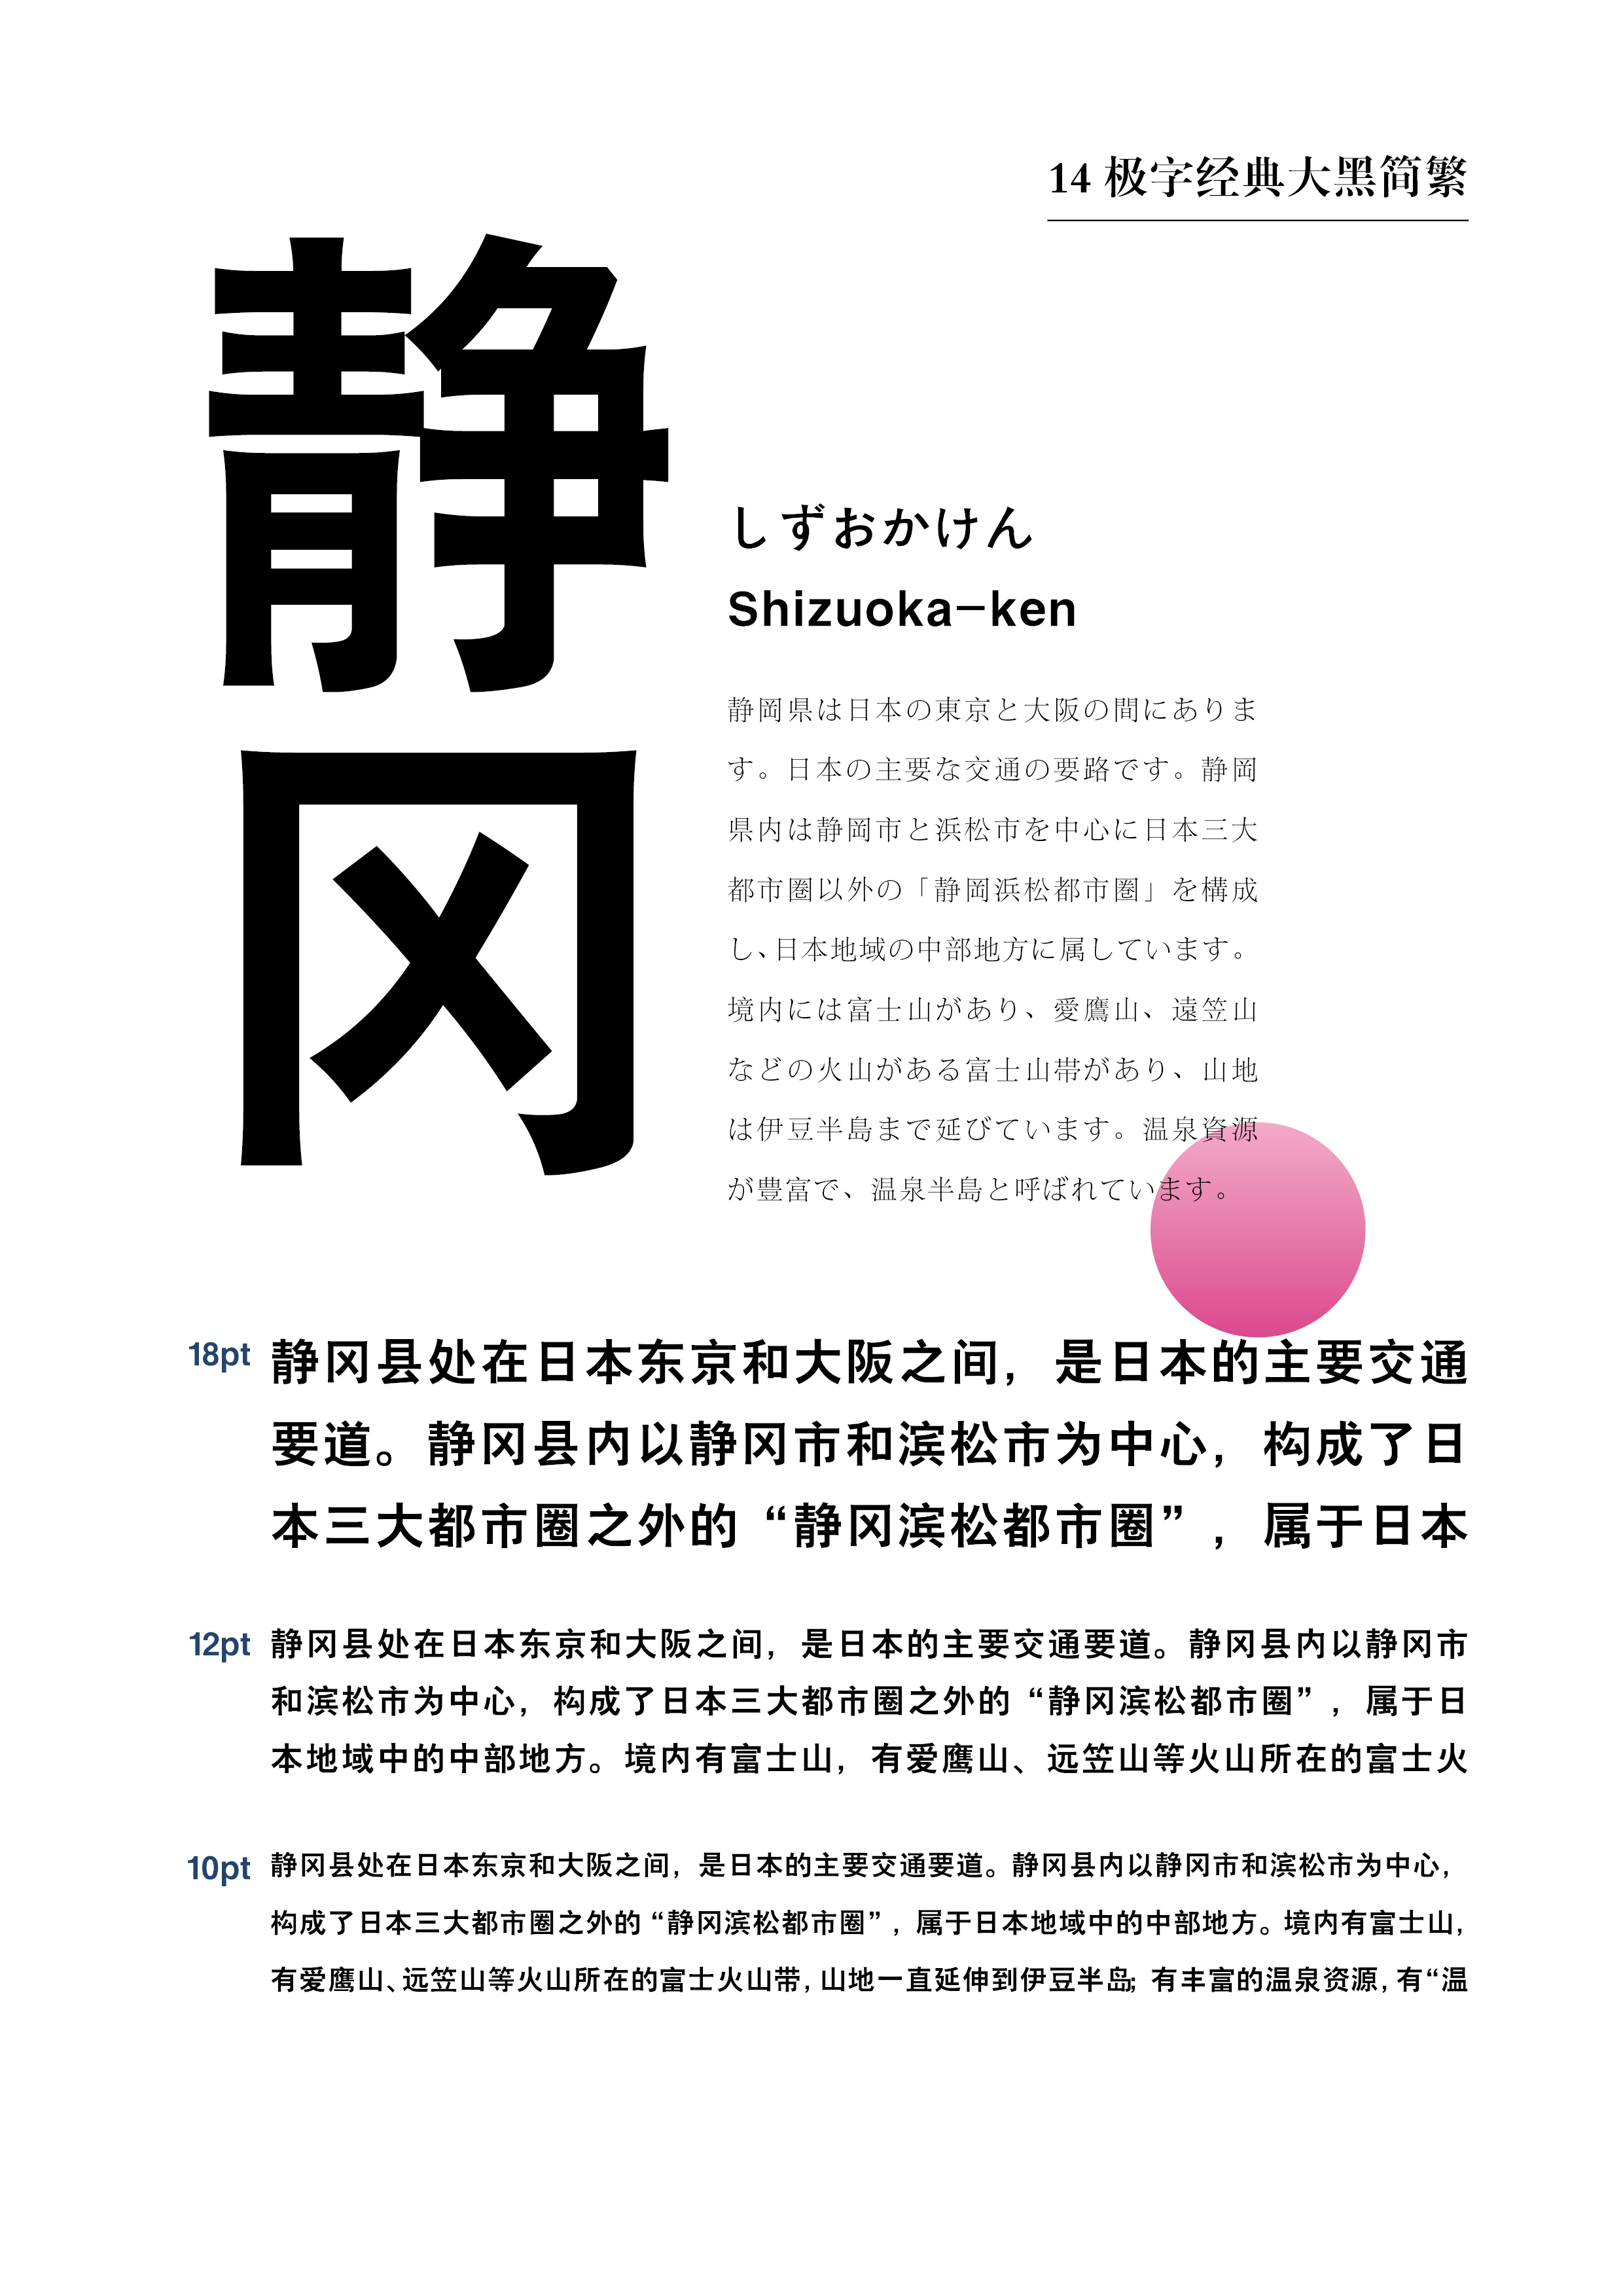 49P Collection of the latest Chinese font design schemes in 2021 #.133